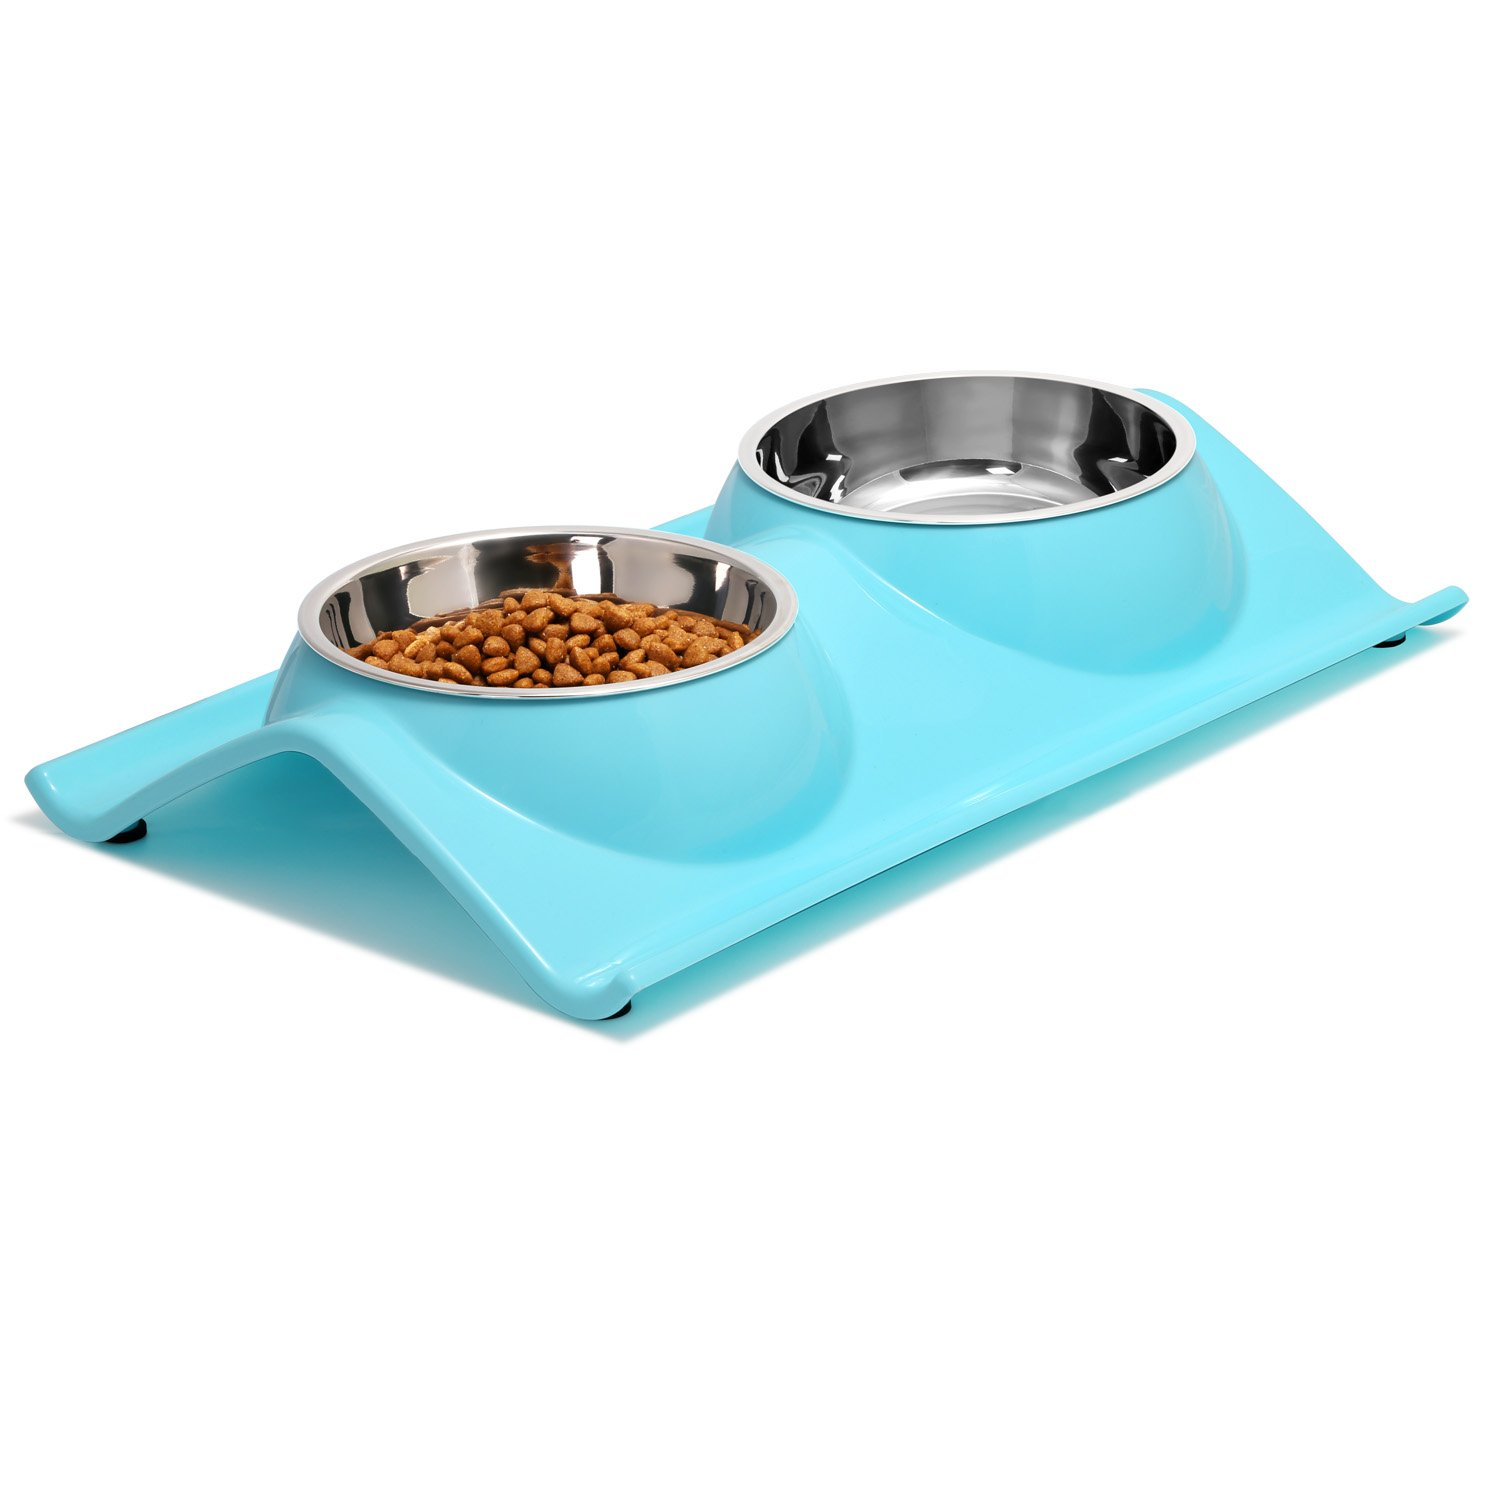 UPSKY Double Dog Cat Bowls Premium Stainless Steel Pet Bowls with No-Spill Resin Station, Food Water Feeder for Cats and Small Dogs, Sky Blue